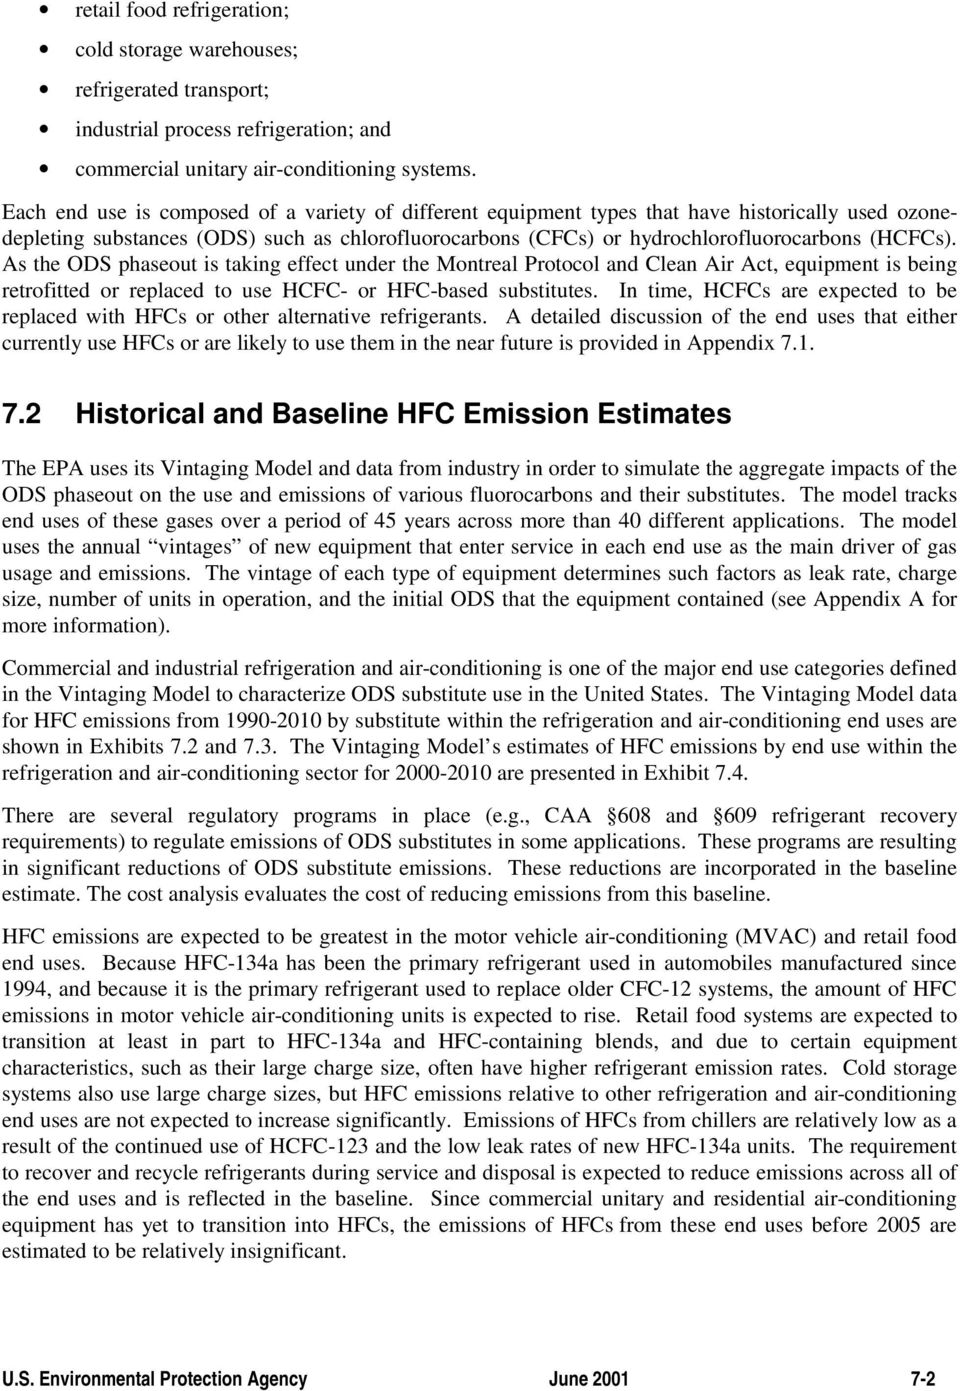 7  COST AND EMISSION REDUCTION ANALYSIS OF HFC EMISSIONS FROM